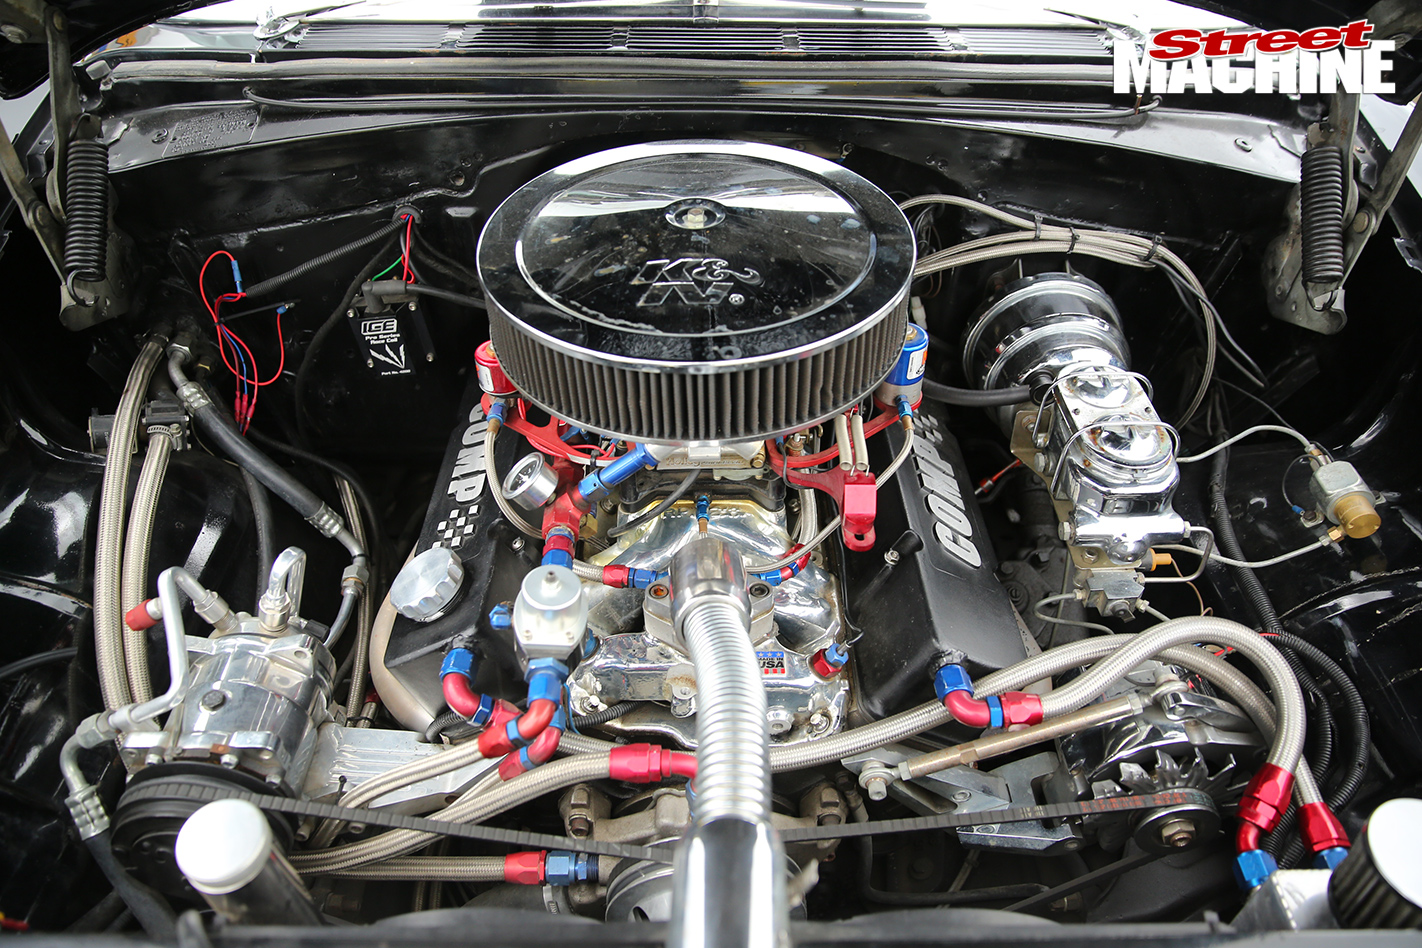 1955-CHEVROLET-BELAIR-AT-DRAG-CHALLENGE-engine